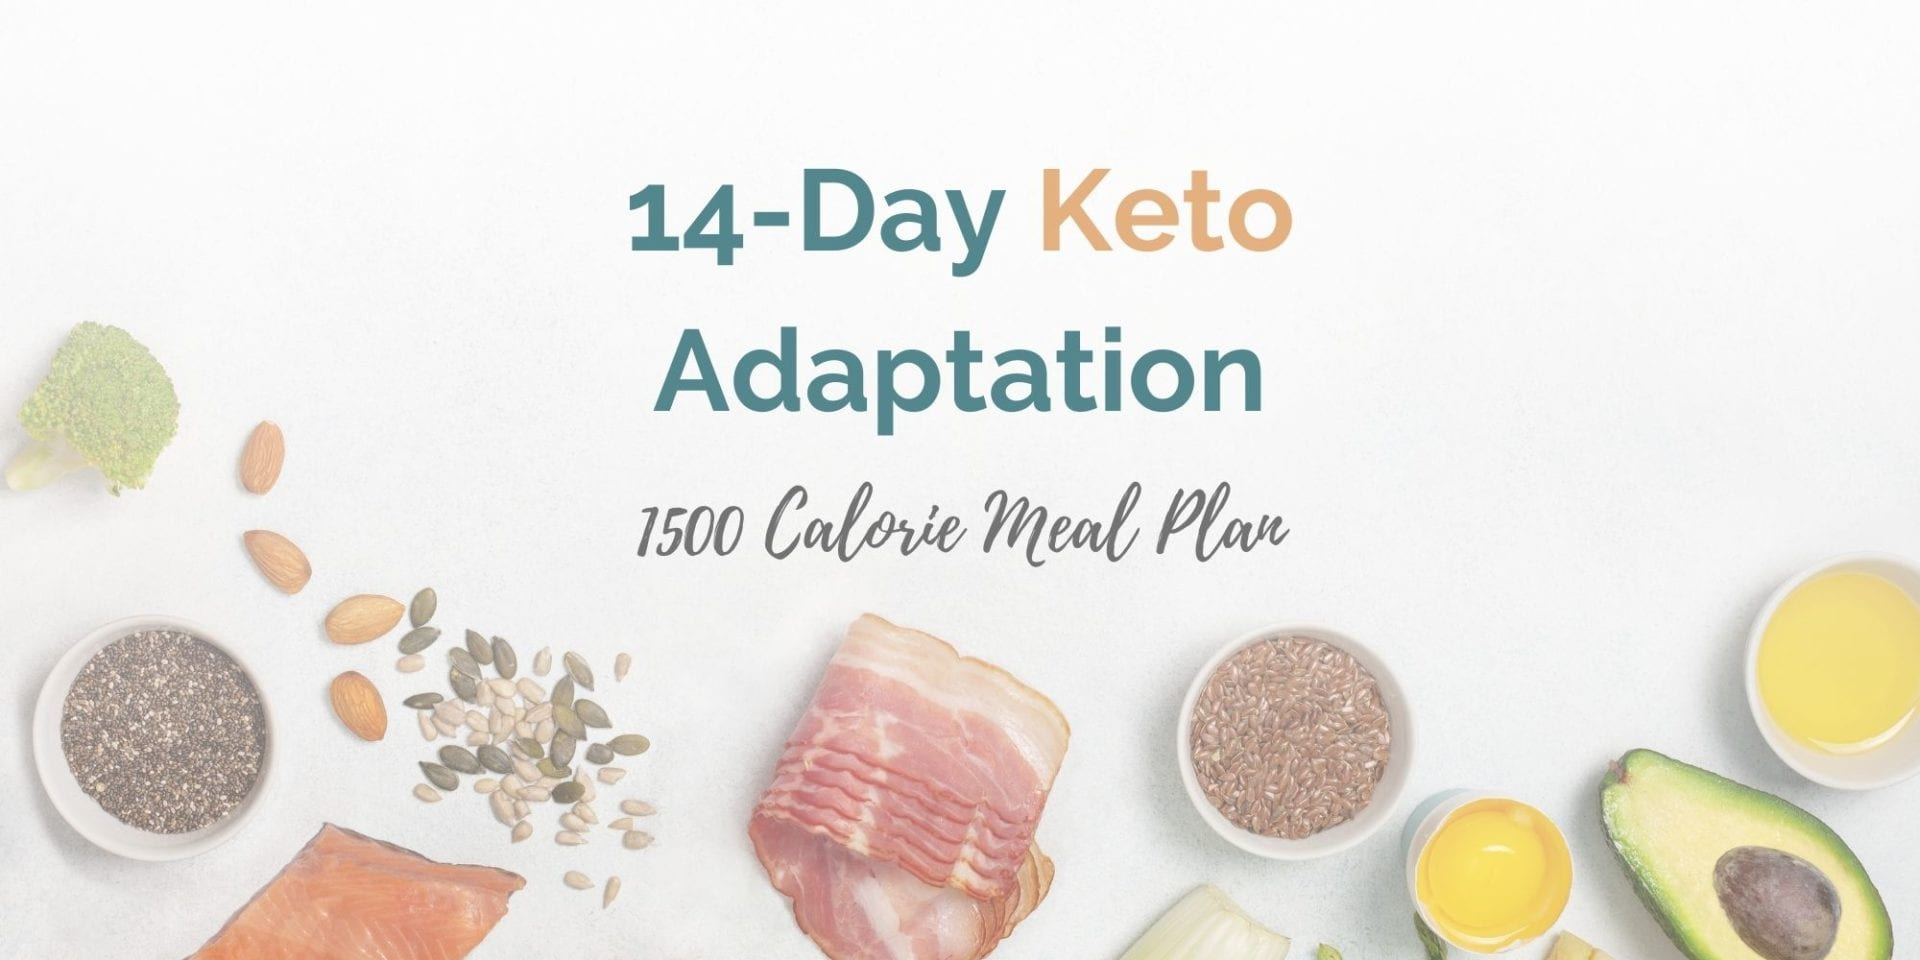 1,500 Calorie 14-Day Adaptation Meal Plan